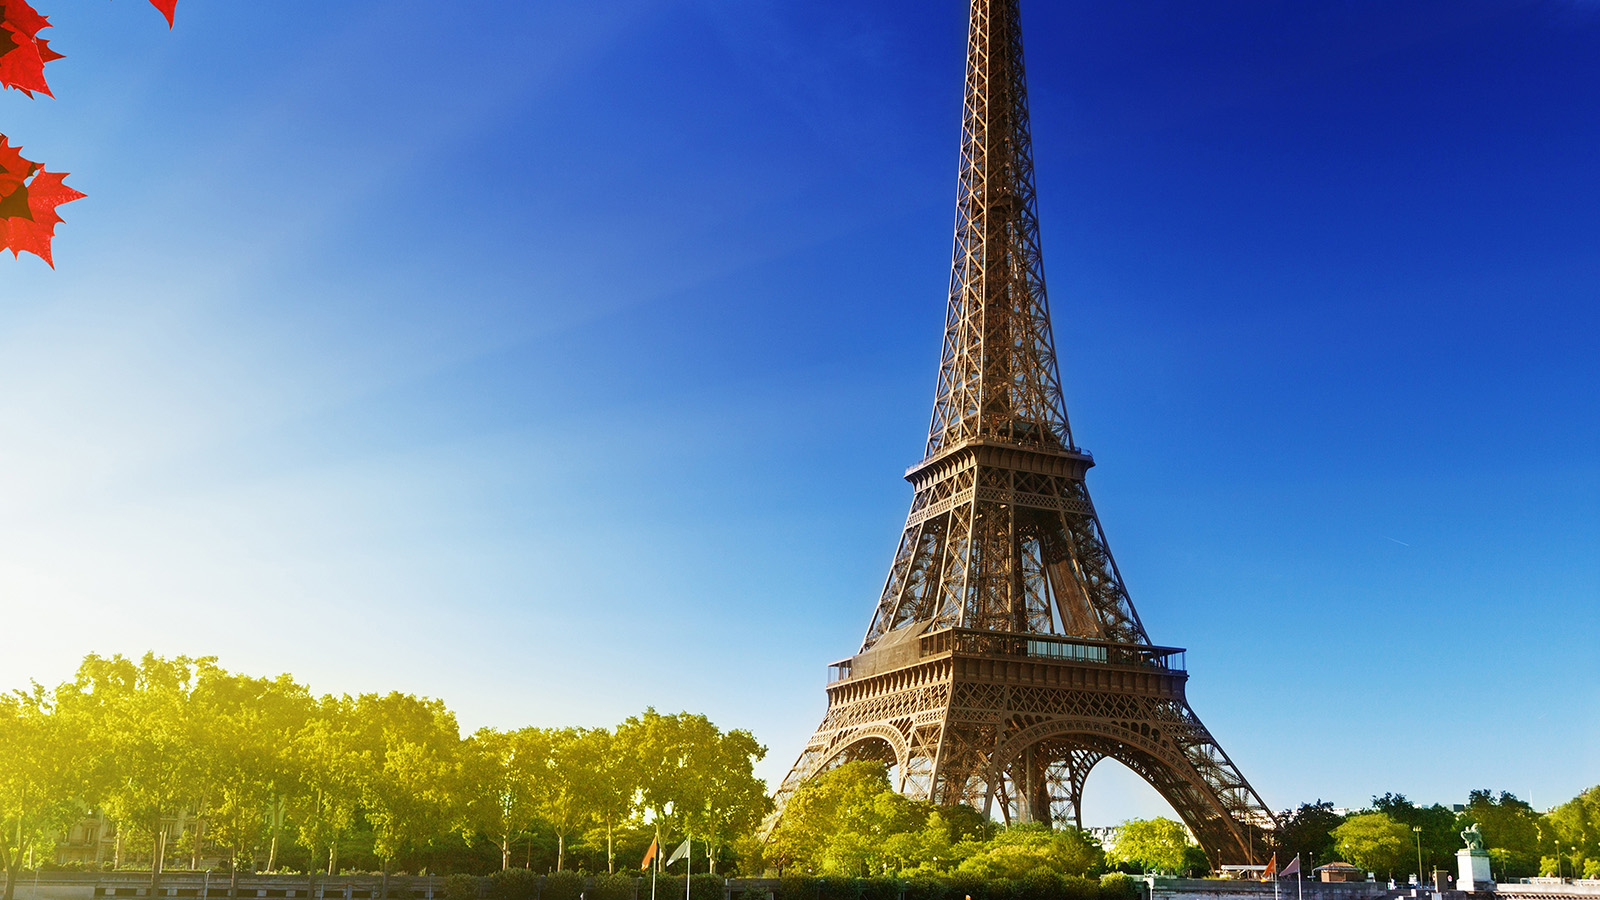 na16-sky-blue-eiffel-tower-nature-paris-city-wallpaper